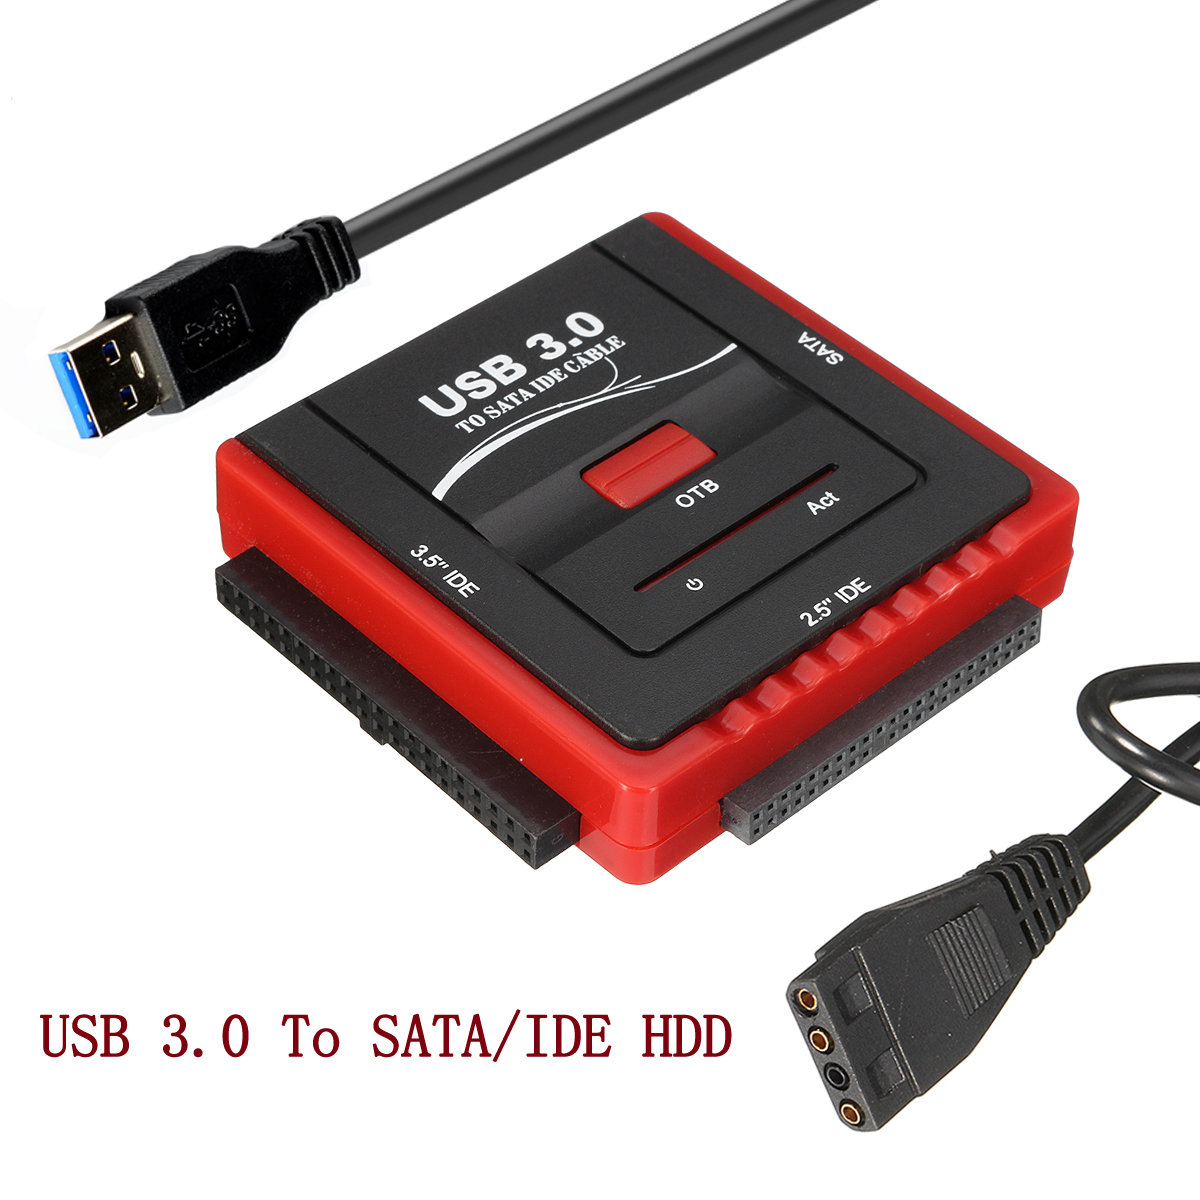 Usb 30 To Sata Ide Hdd Hard Disk Drive Converter Cable Adapter Notebook Interface Cdrom External Circuit Board 3 600x600